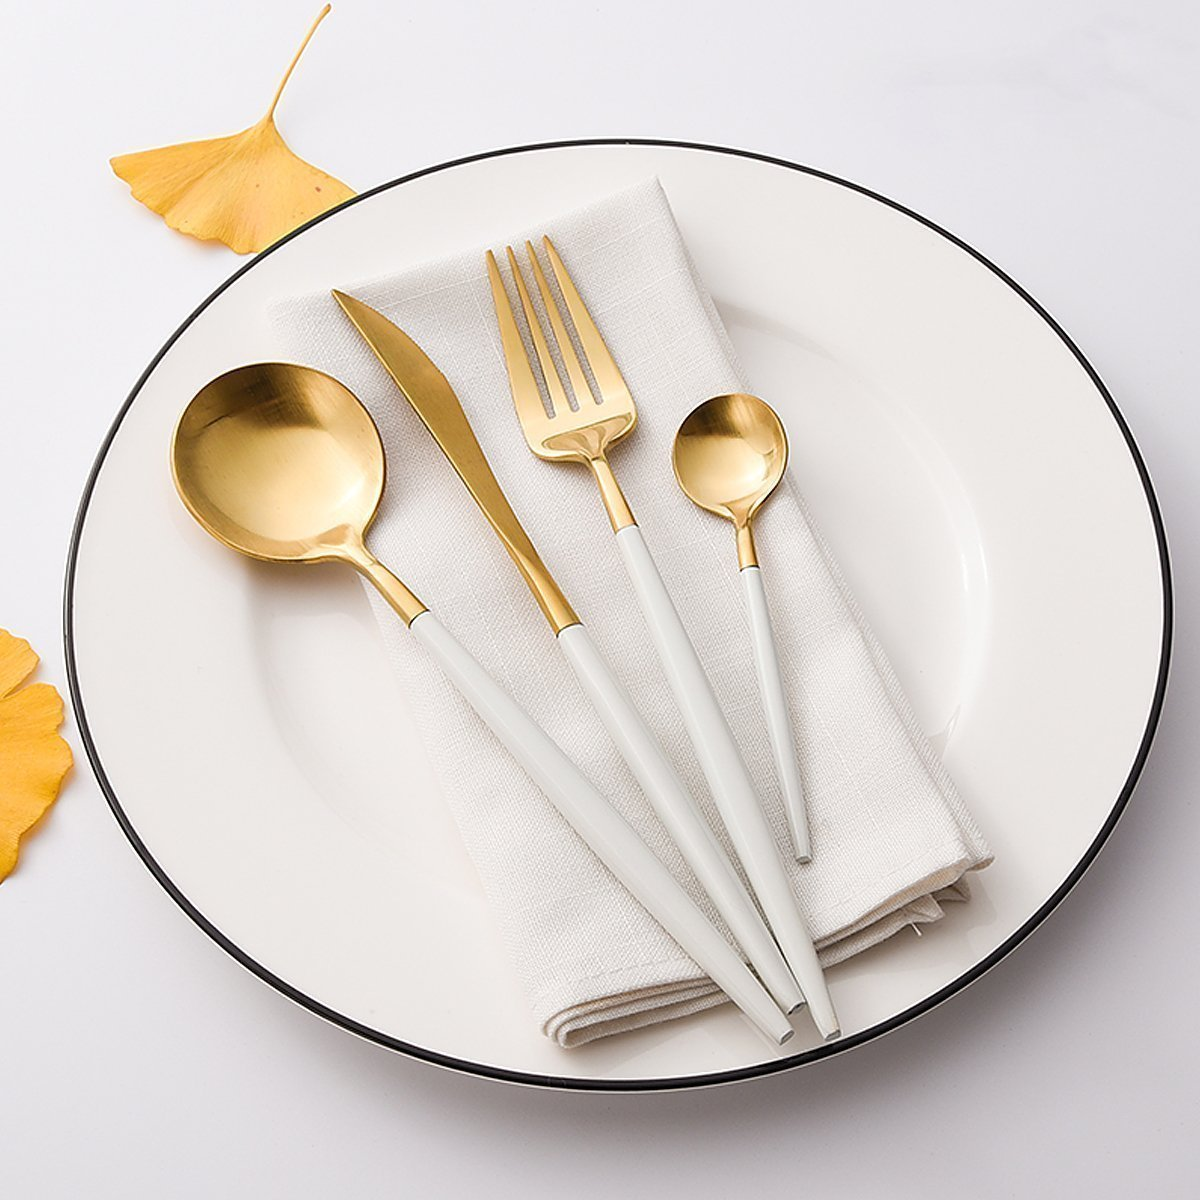 Change up your flatware for Spring!